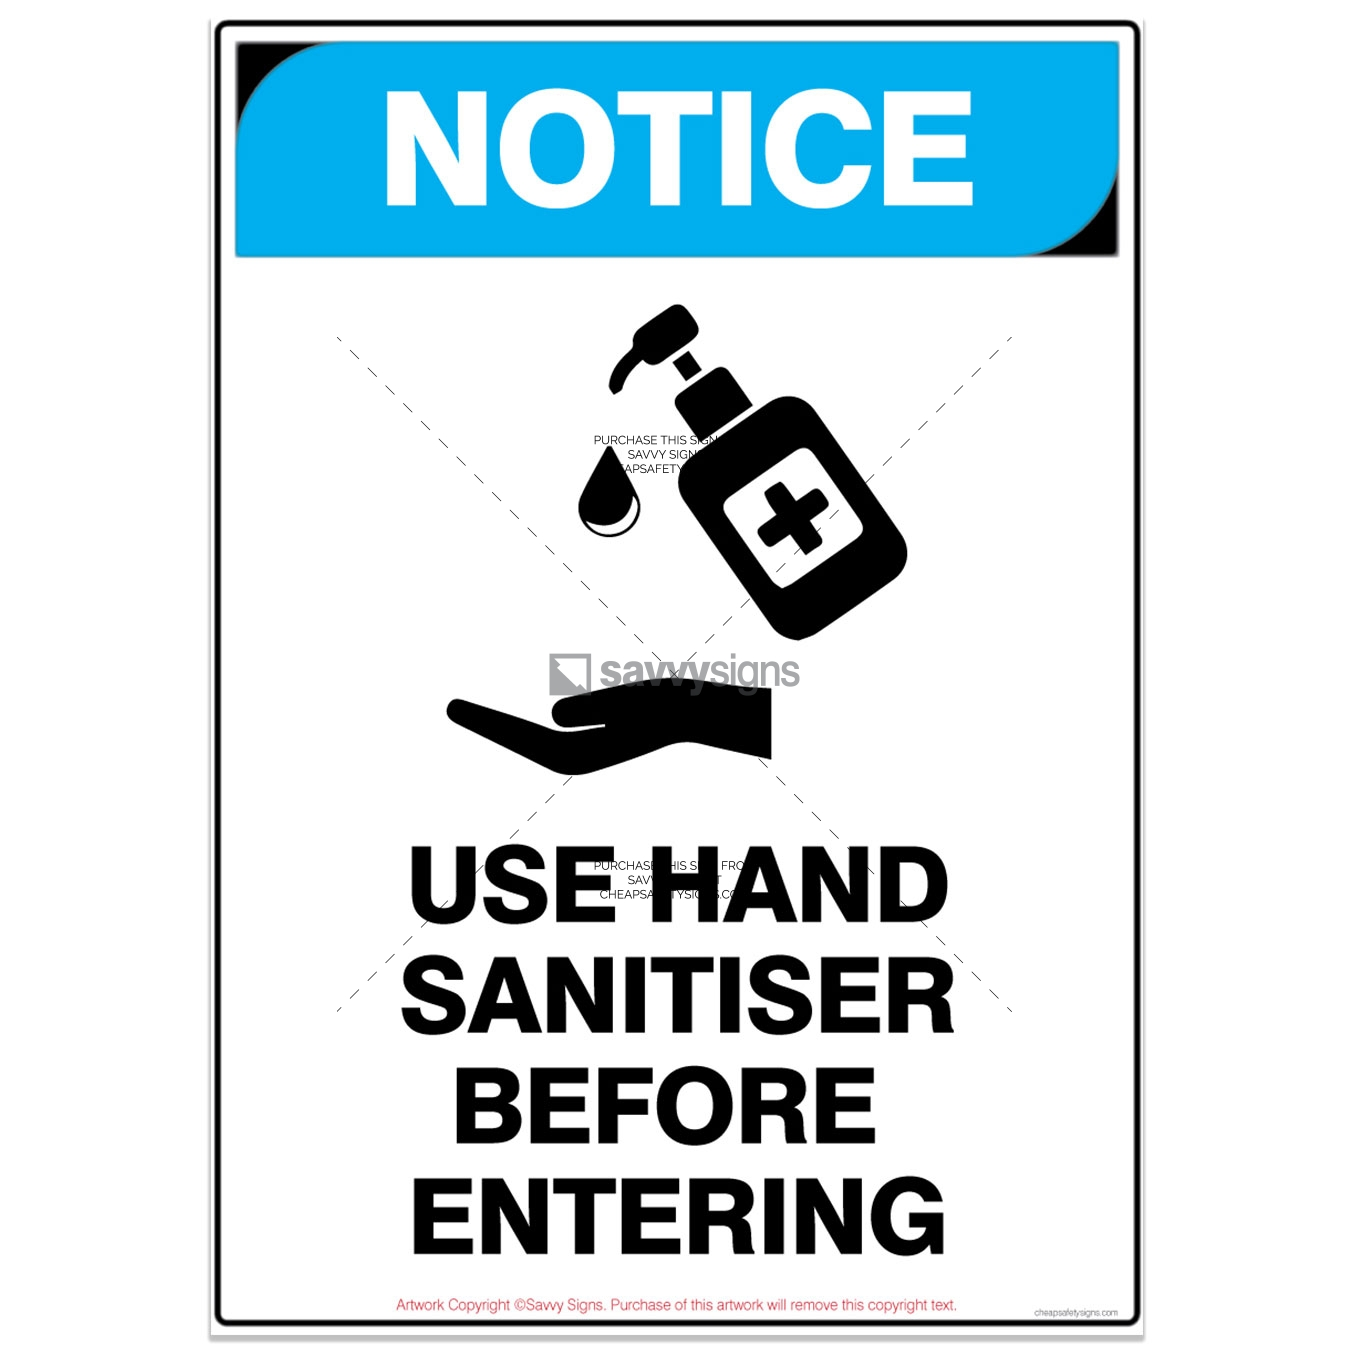 SSNOCOV3P006-COVID19-NOTICE-Use-Hand-Sanitiser-Before-Entering-Safety-Signs_vsq3